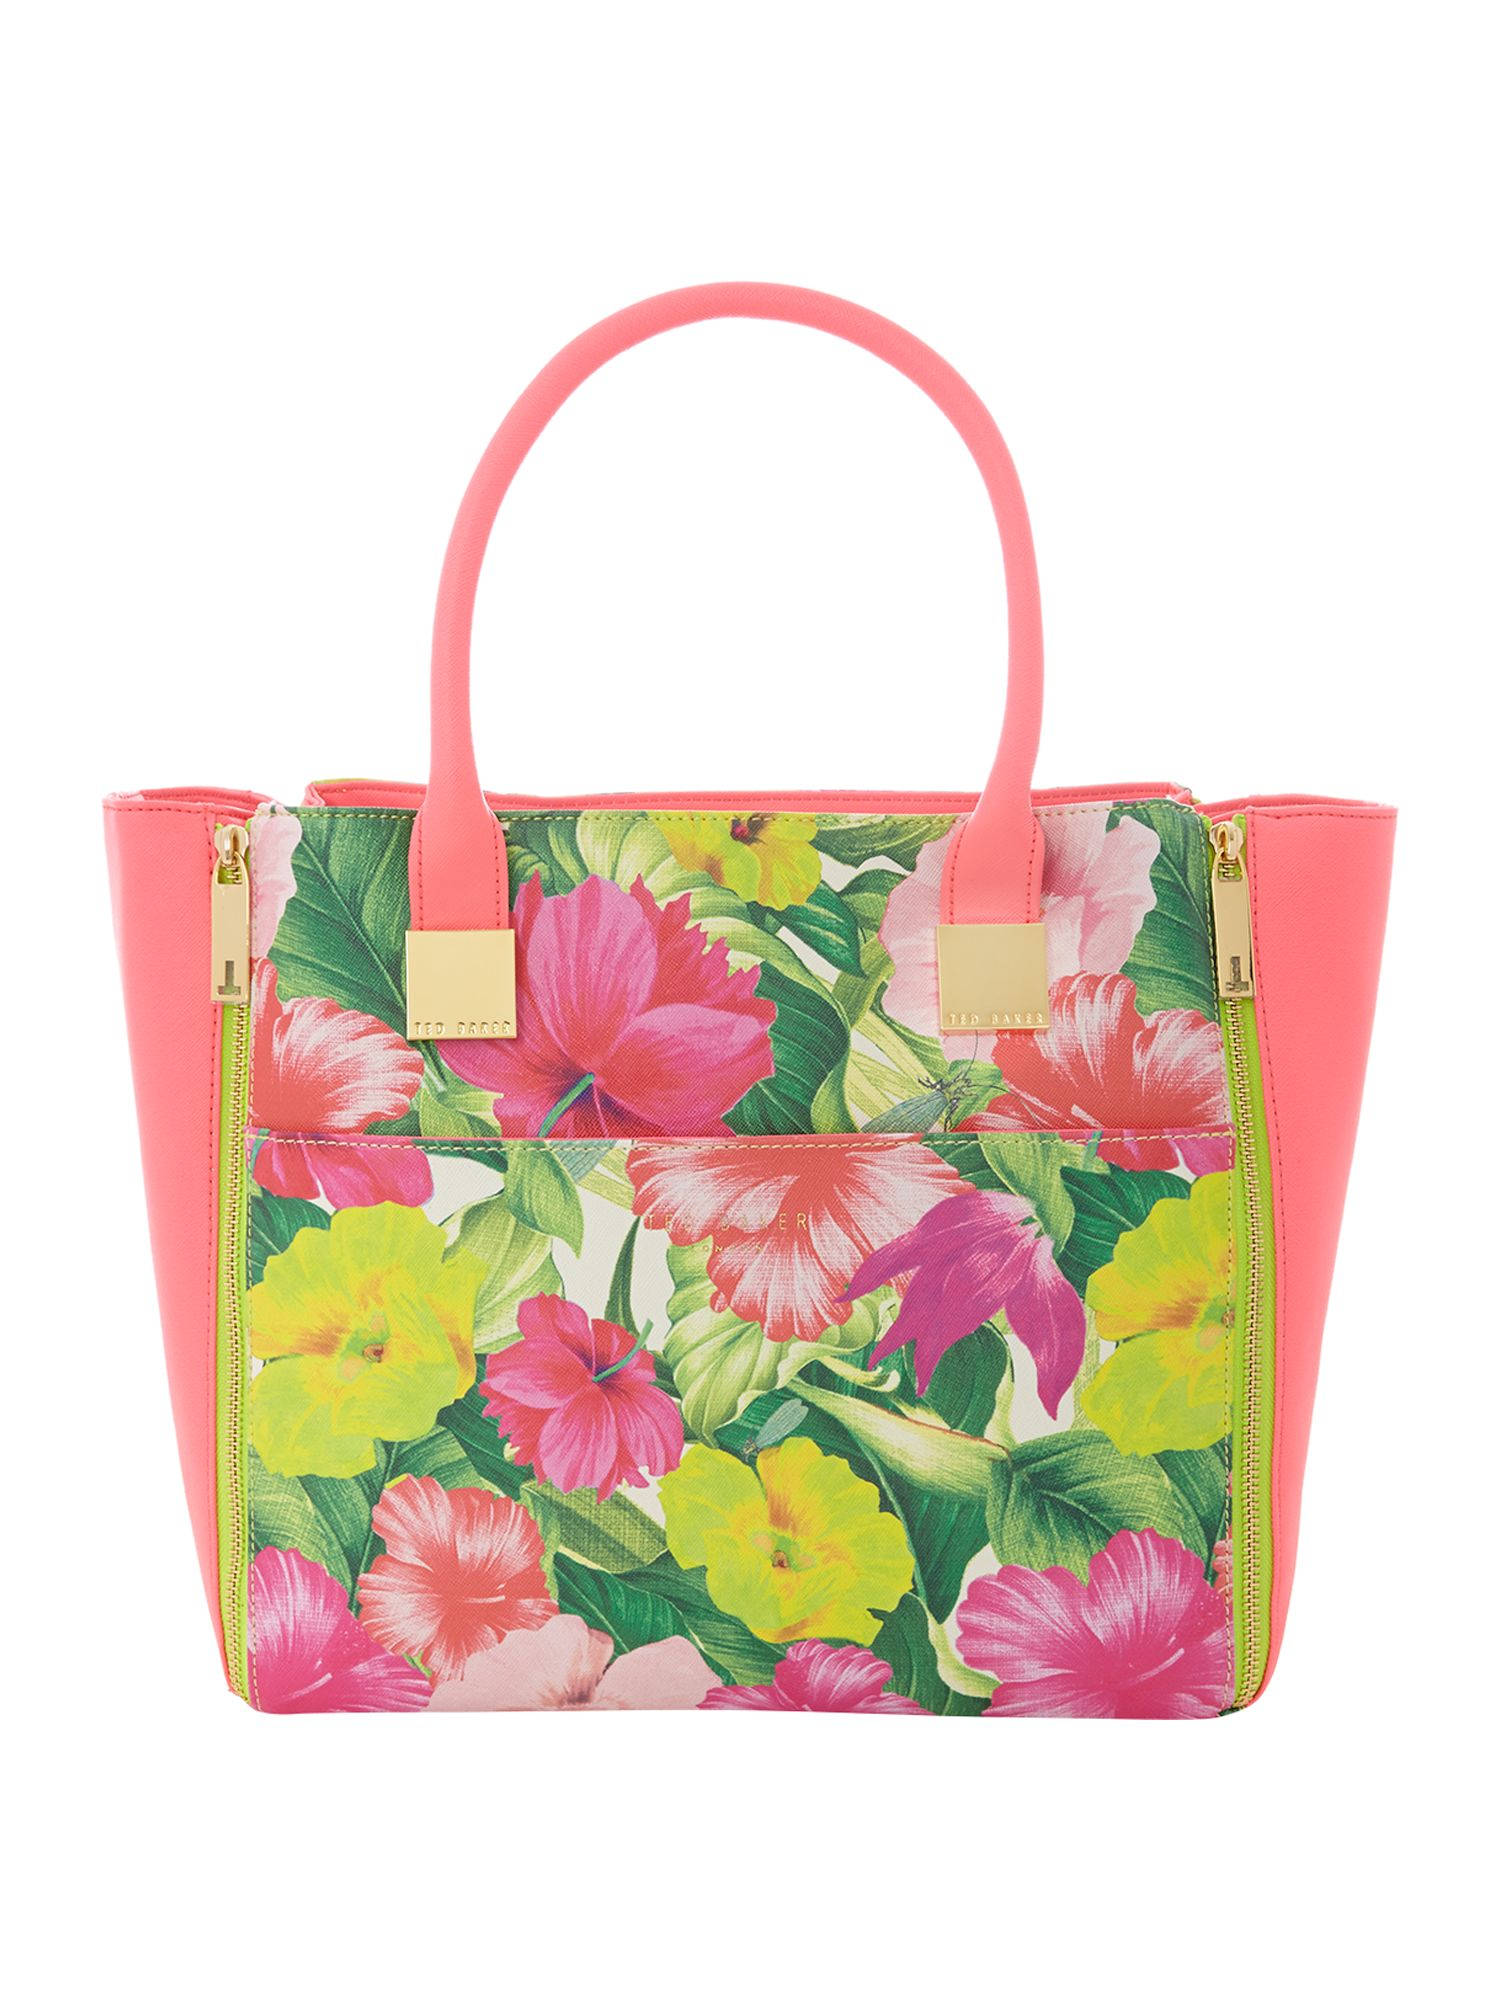 Floral large tote bag